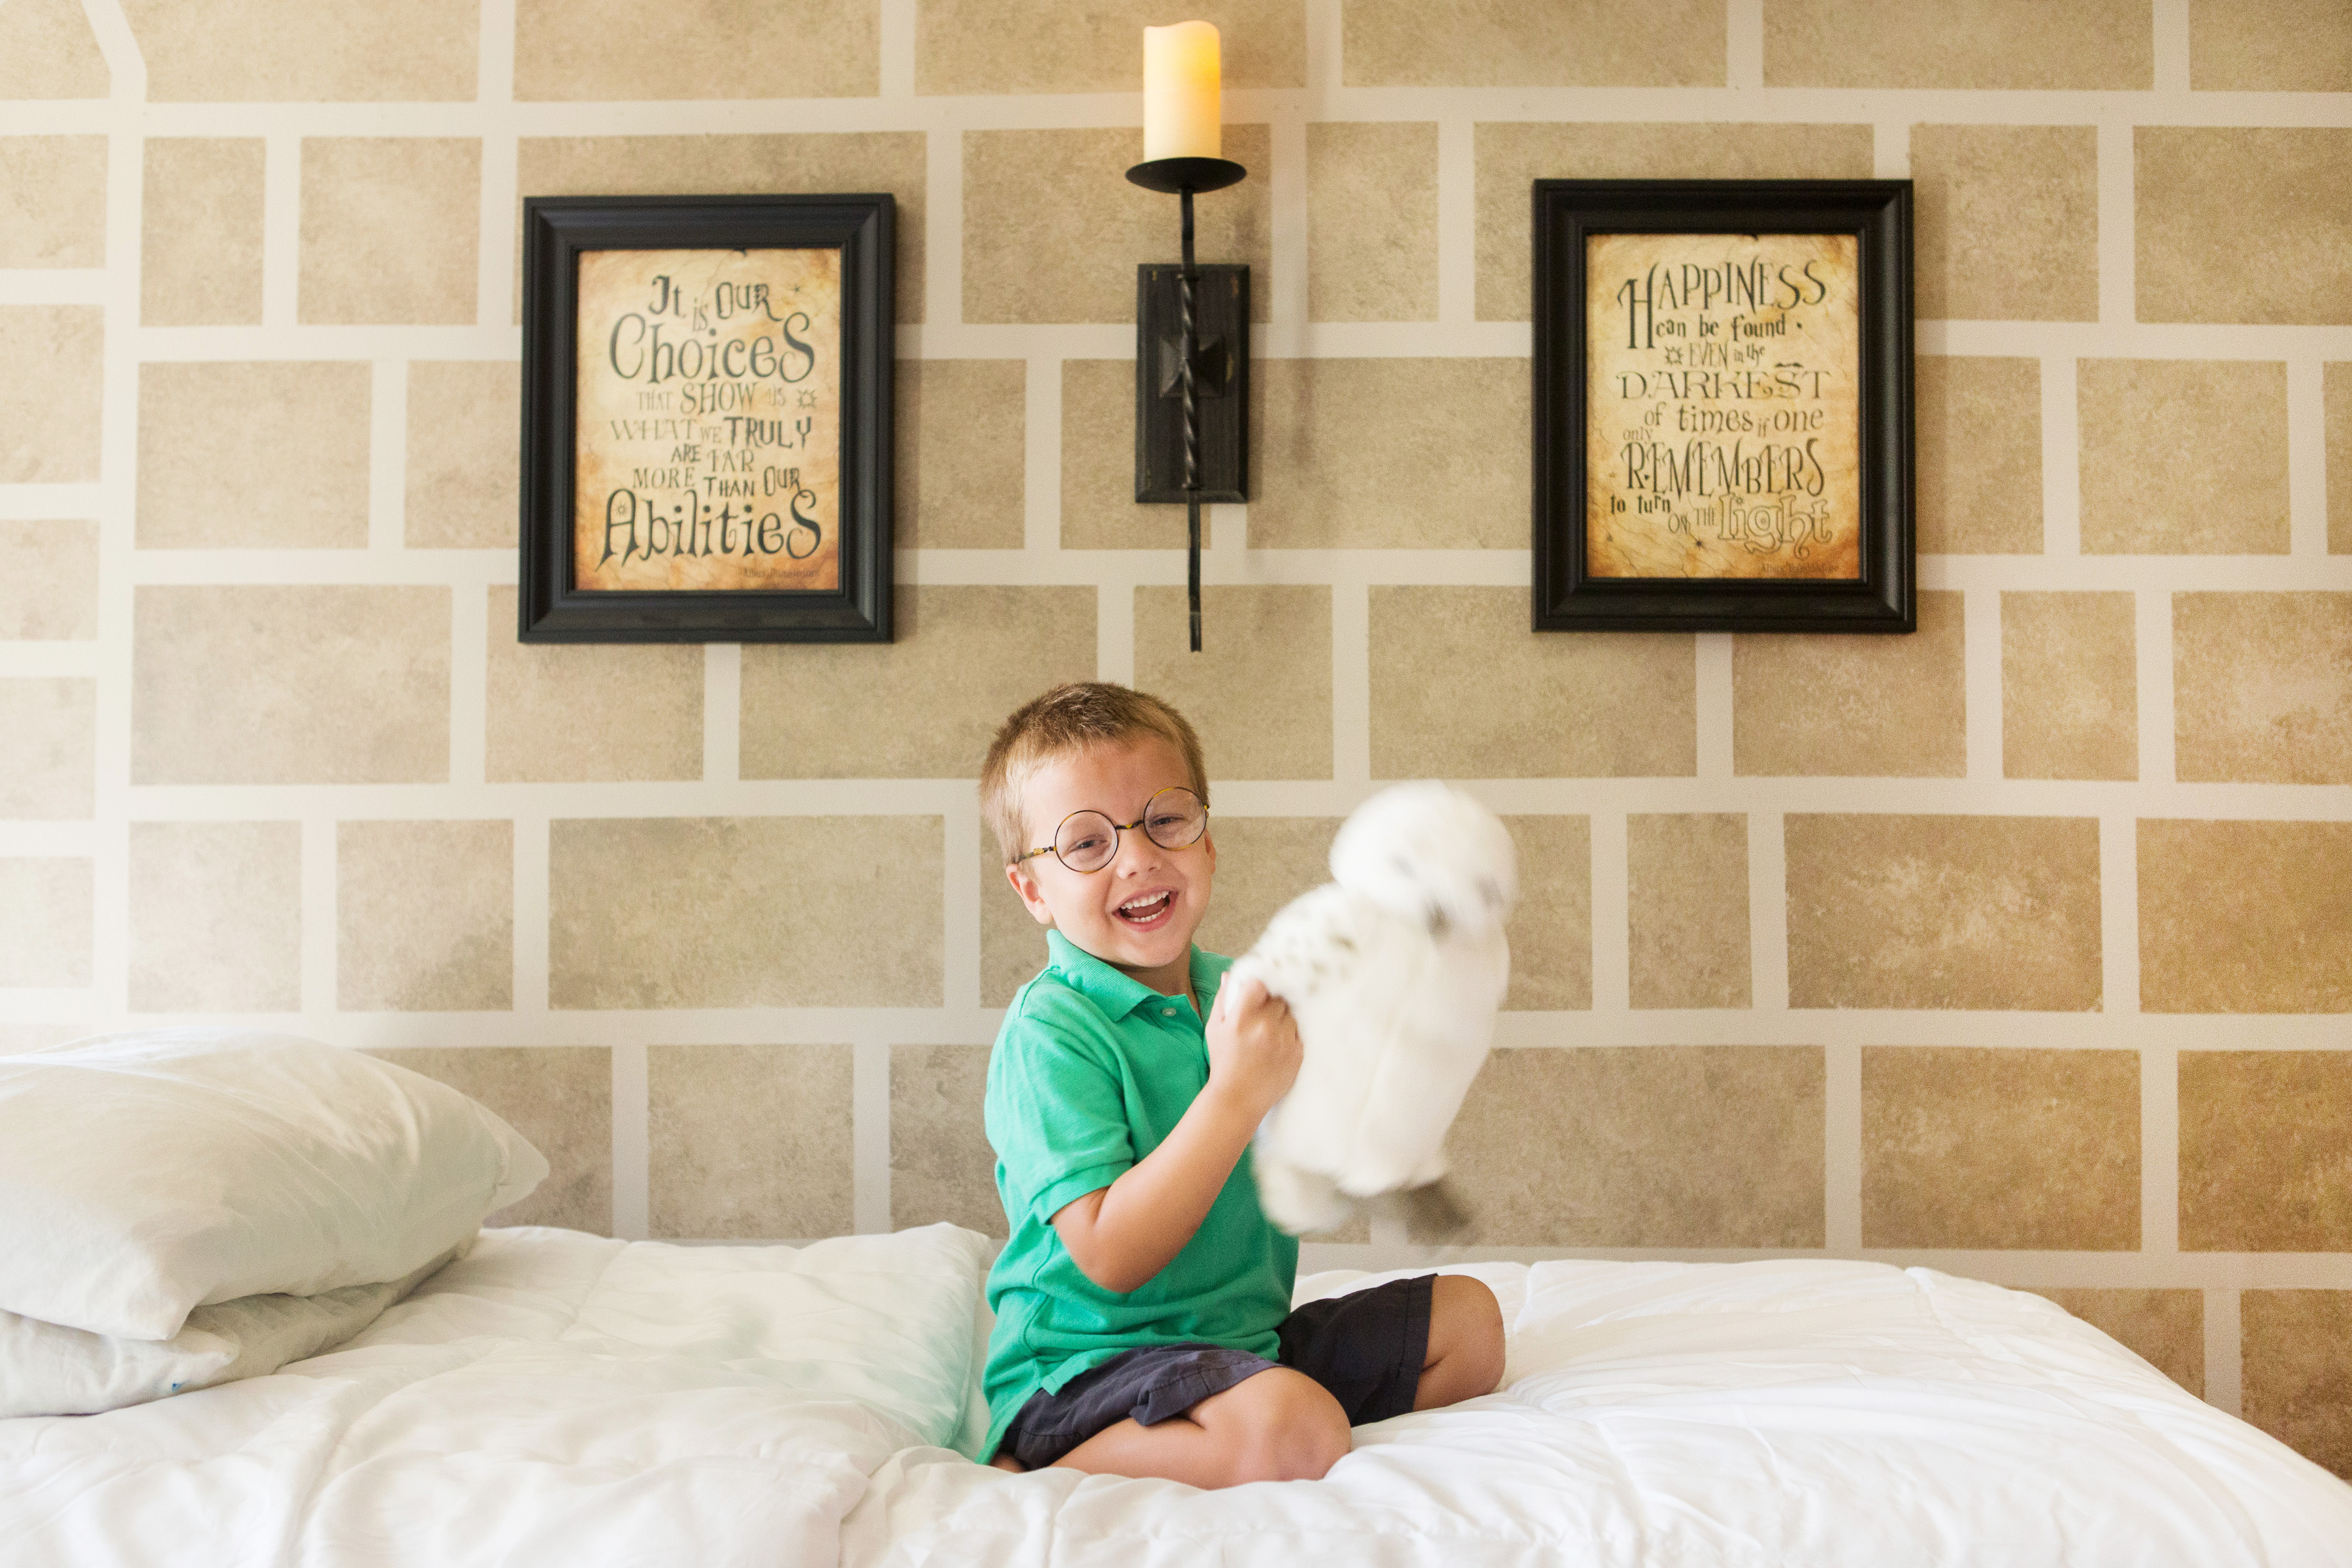 Home Spotlight: Harry Potter Kids' Room | Q & A with Lisa Martin